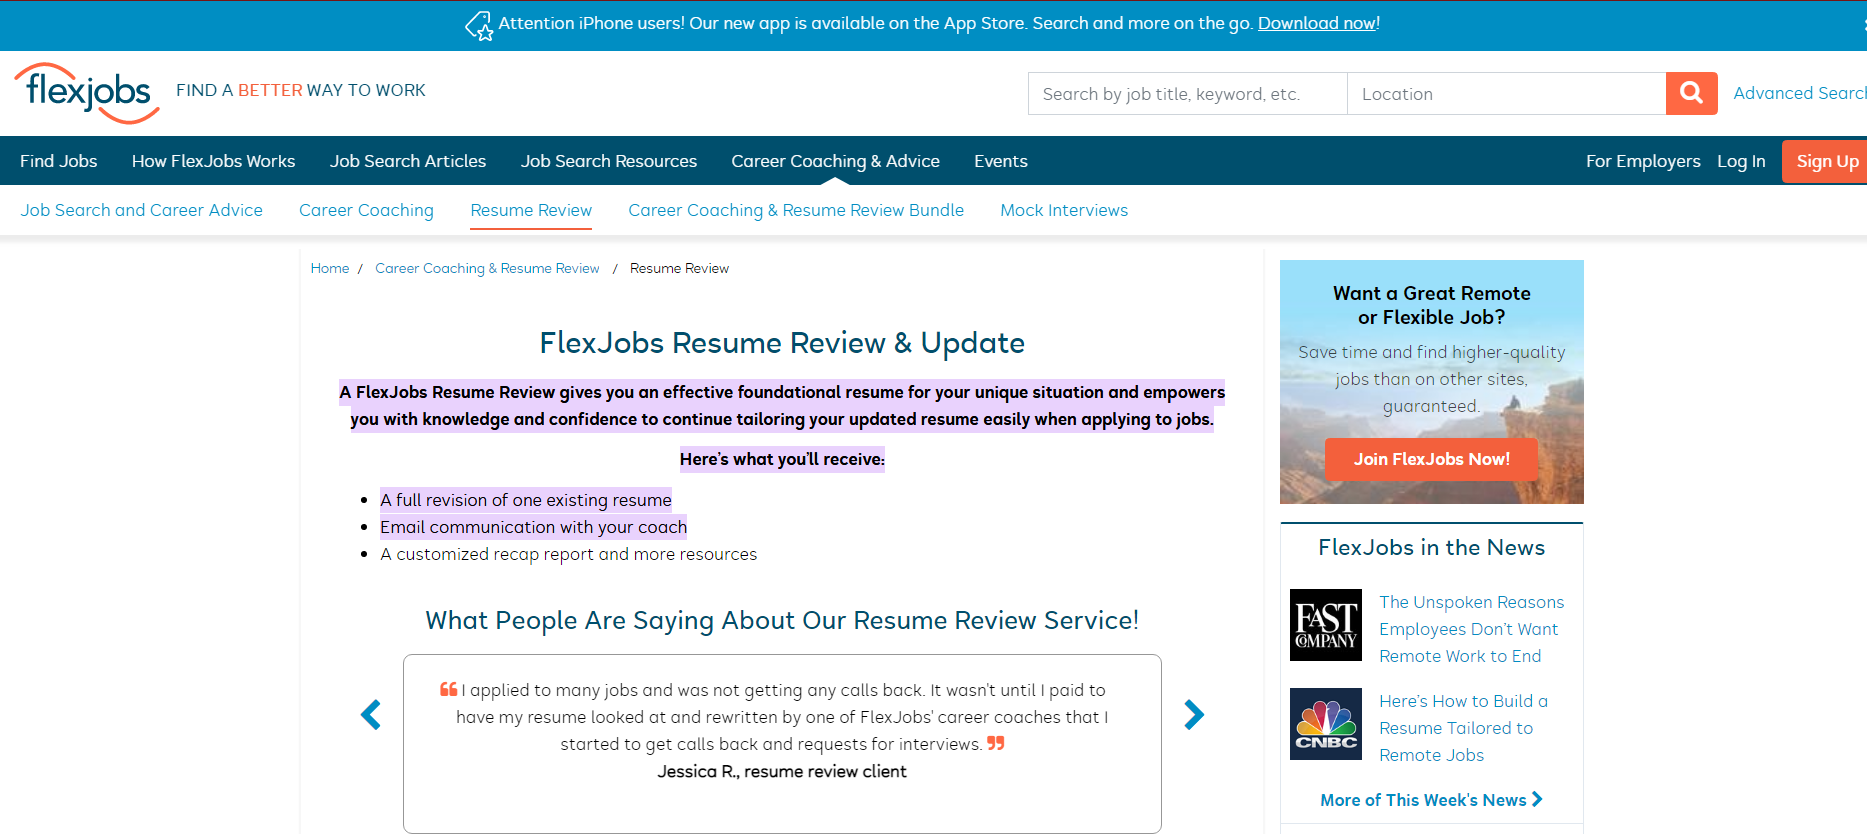 flexjobs resume review